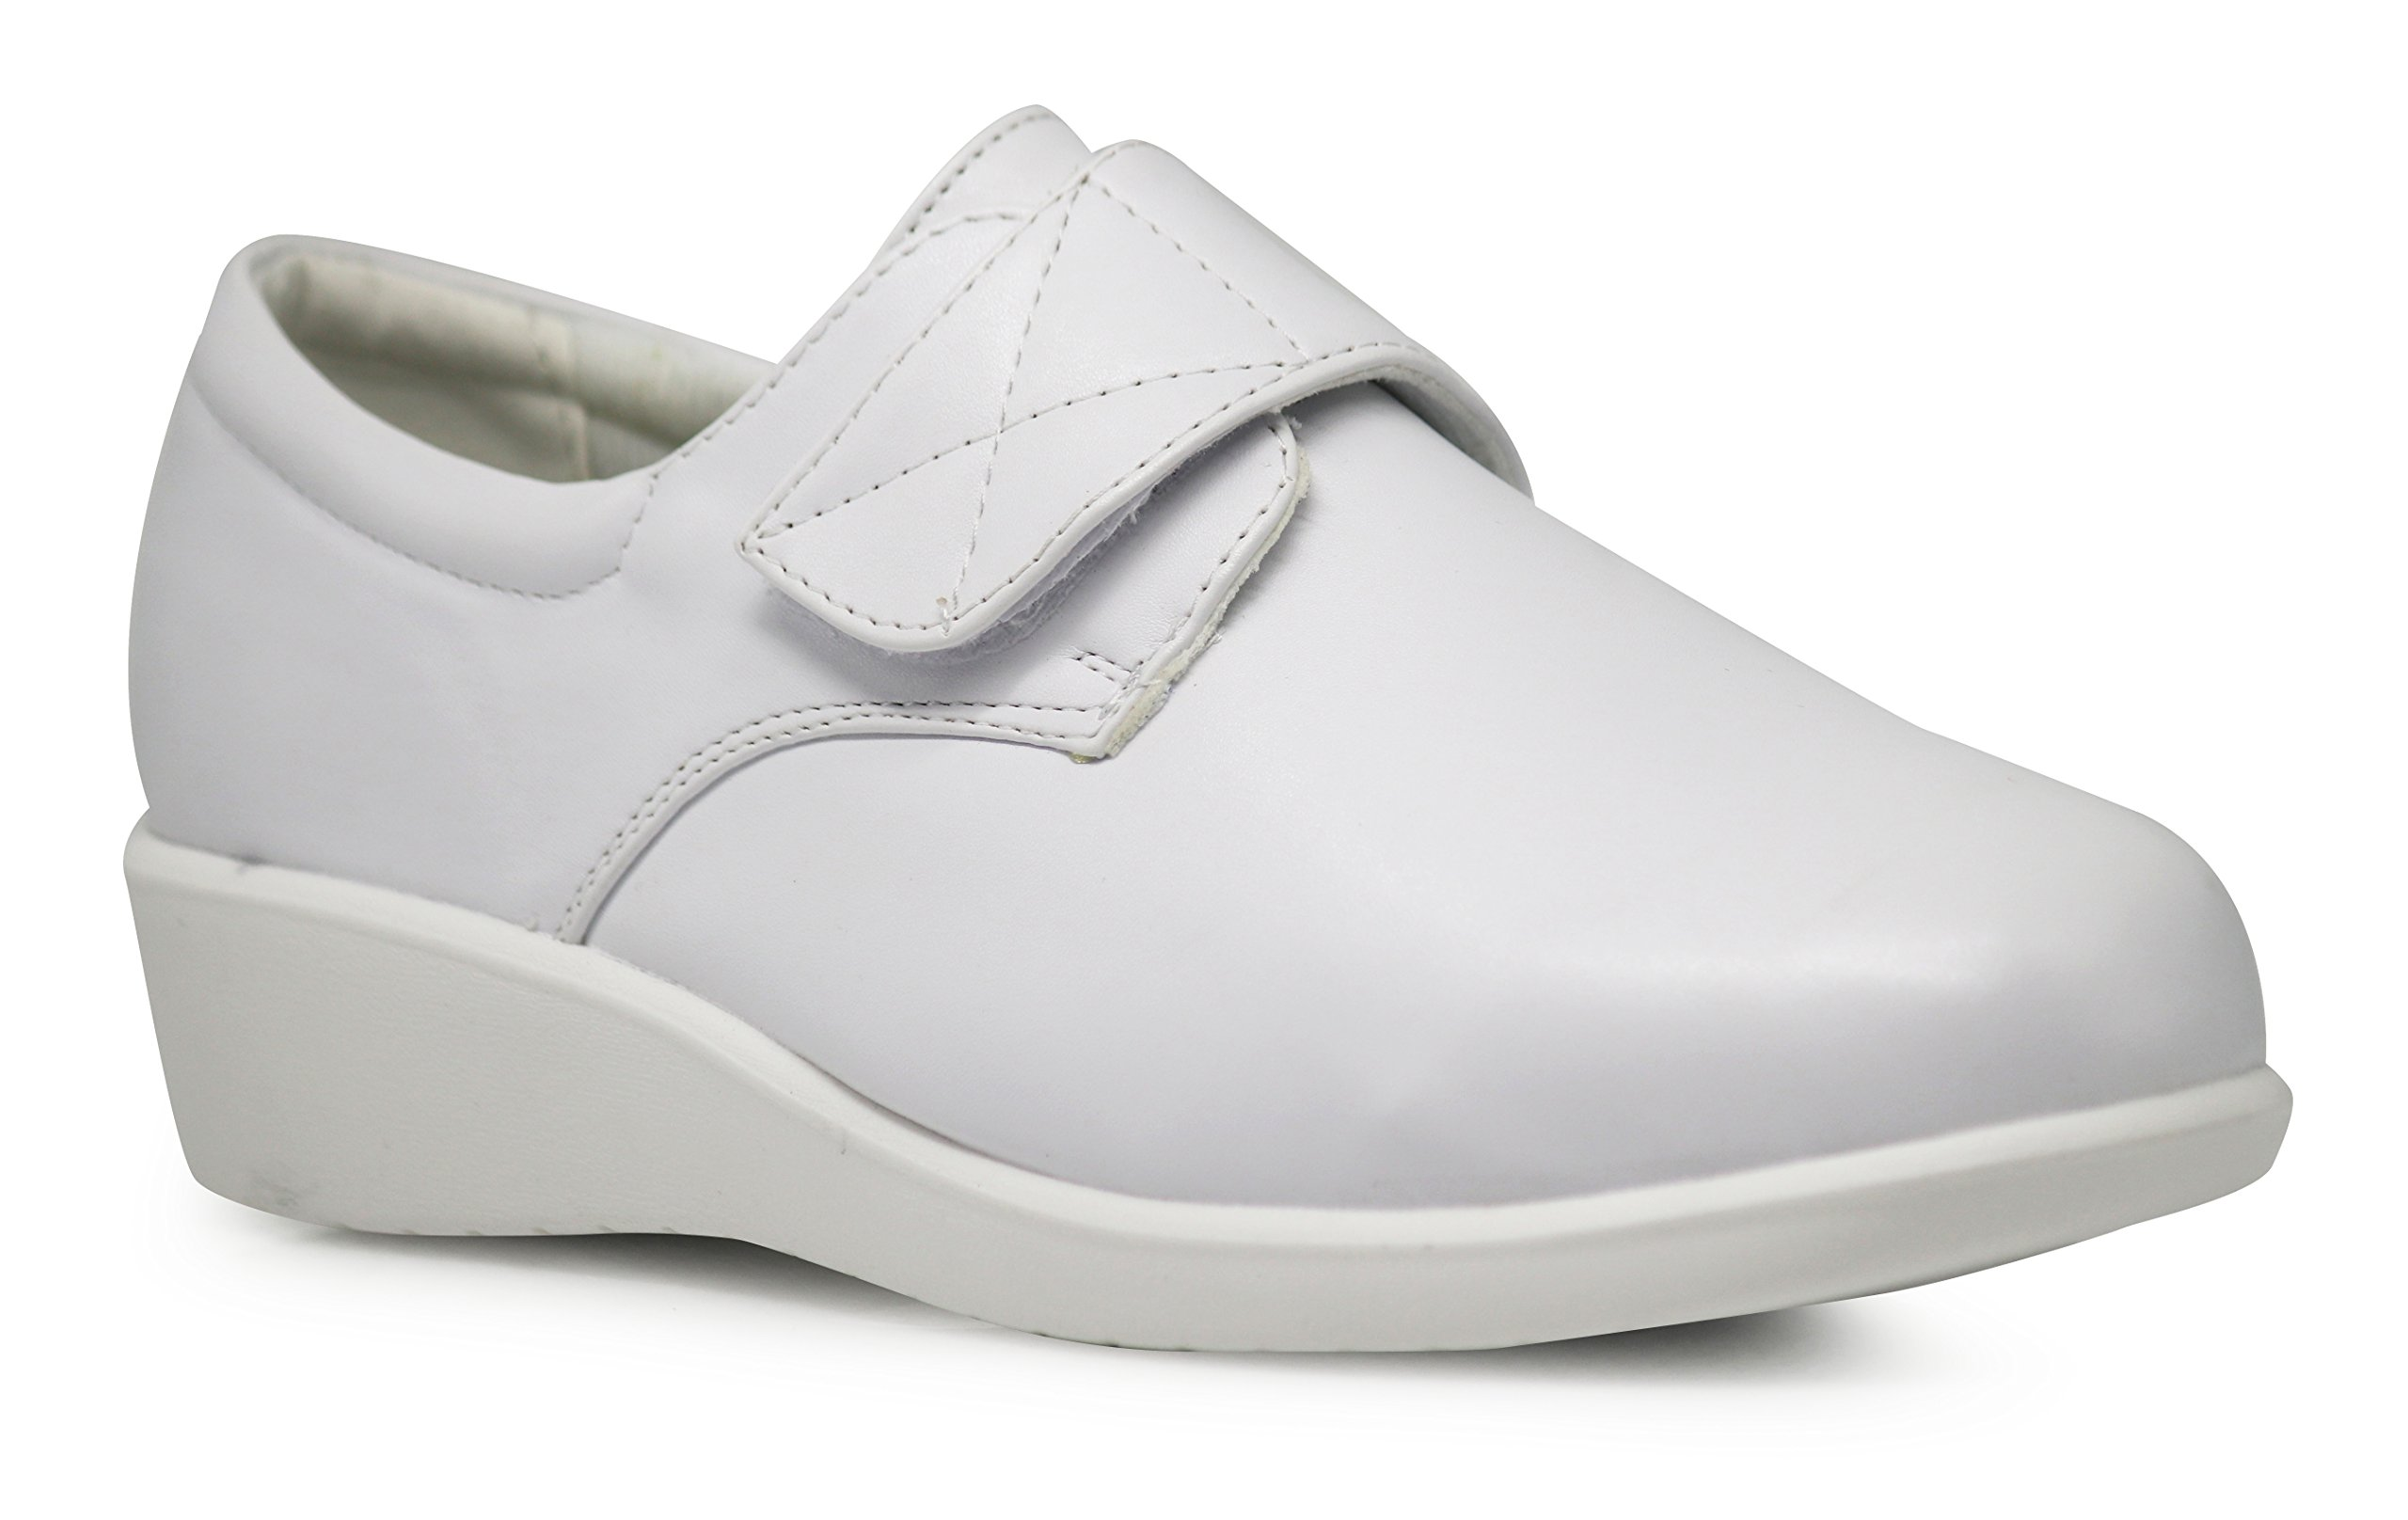 ANNO Medical Clogs Nurse Shoes with Strap ANE1301